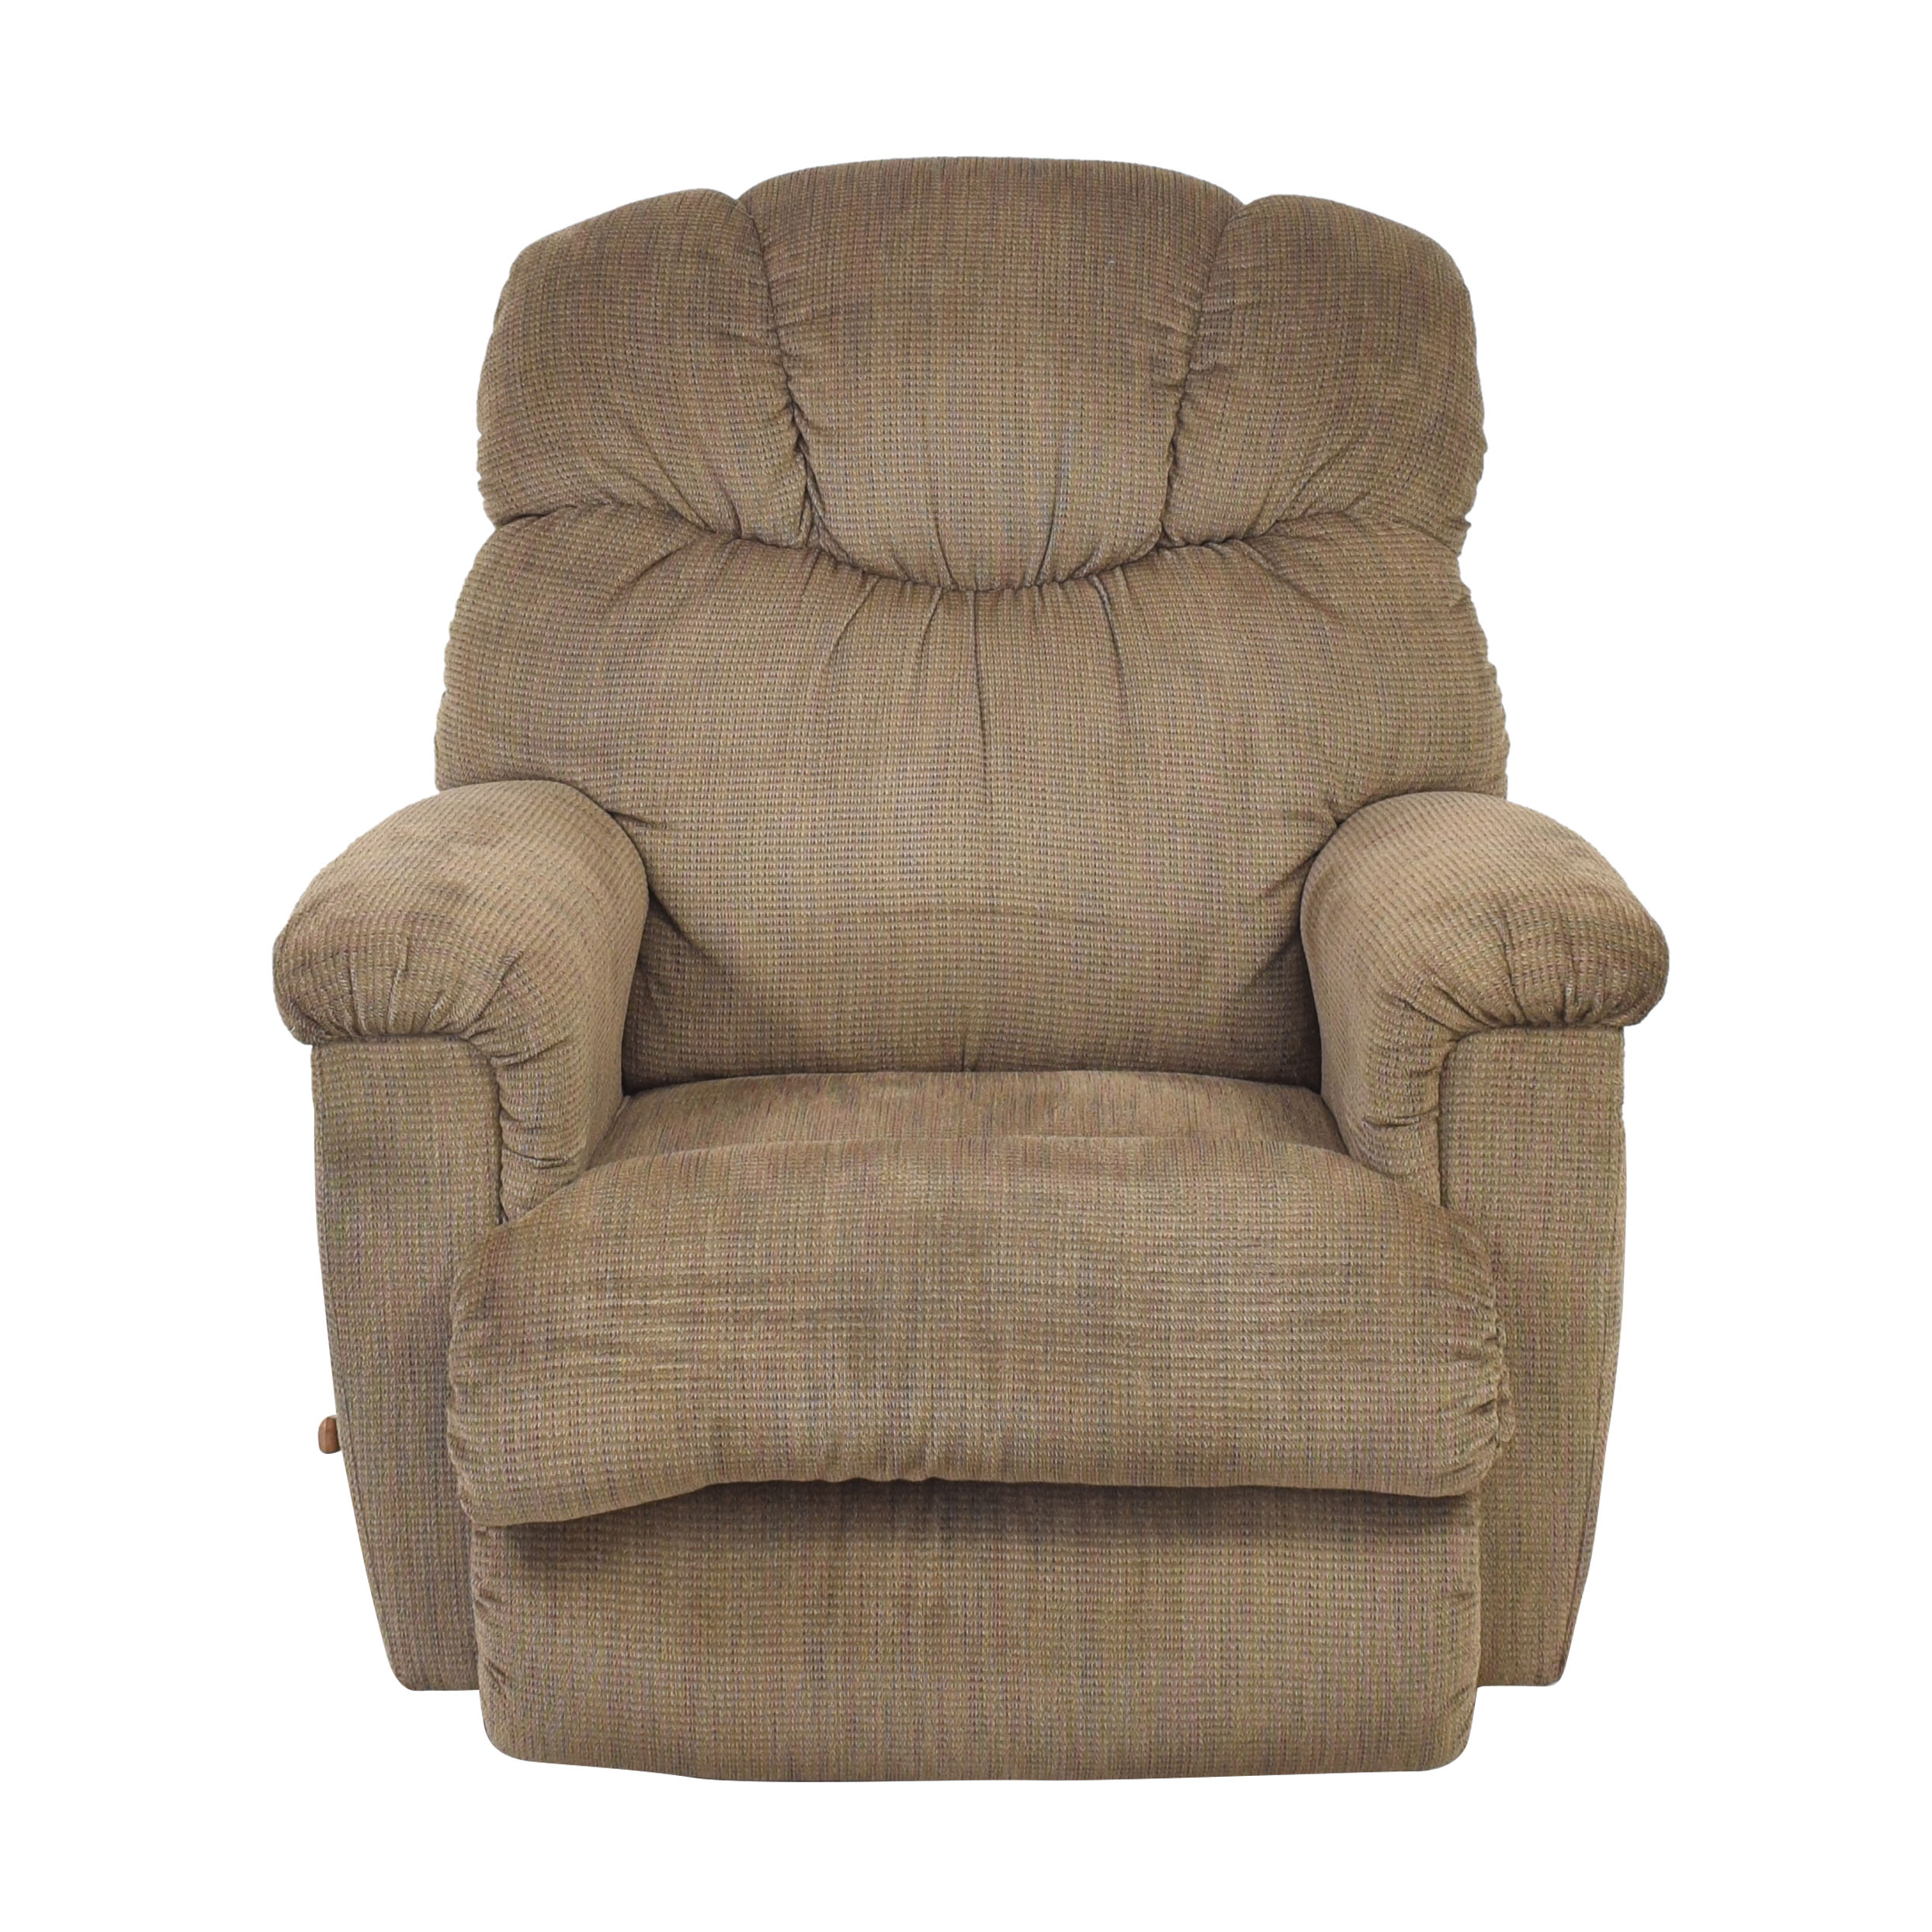 La-Z-Boy La-Z-Boy Recliner nj